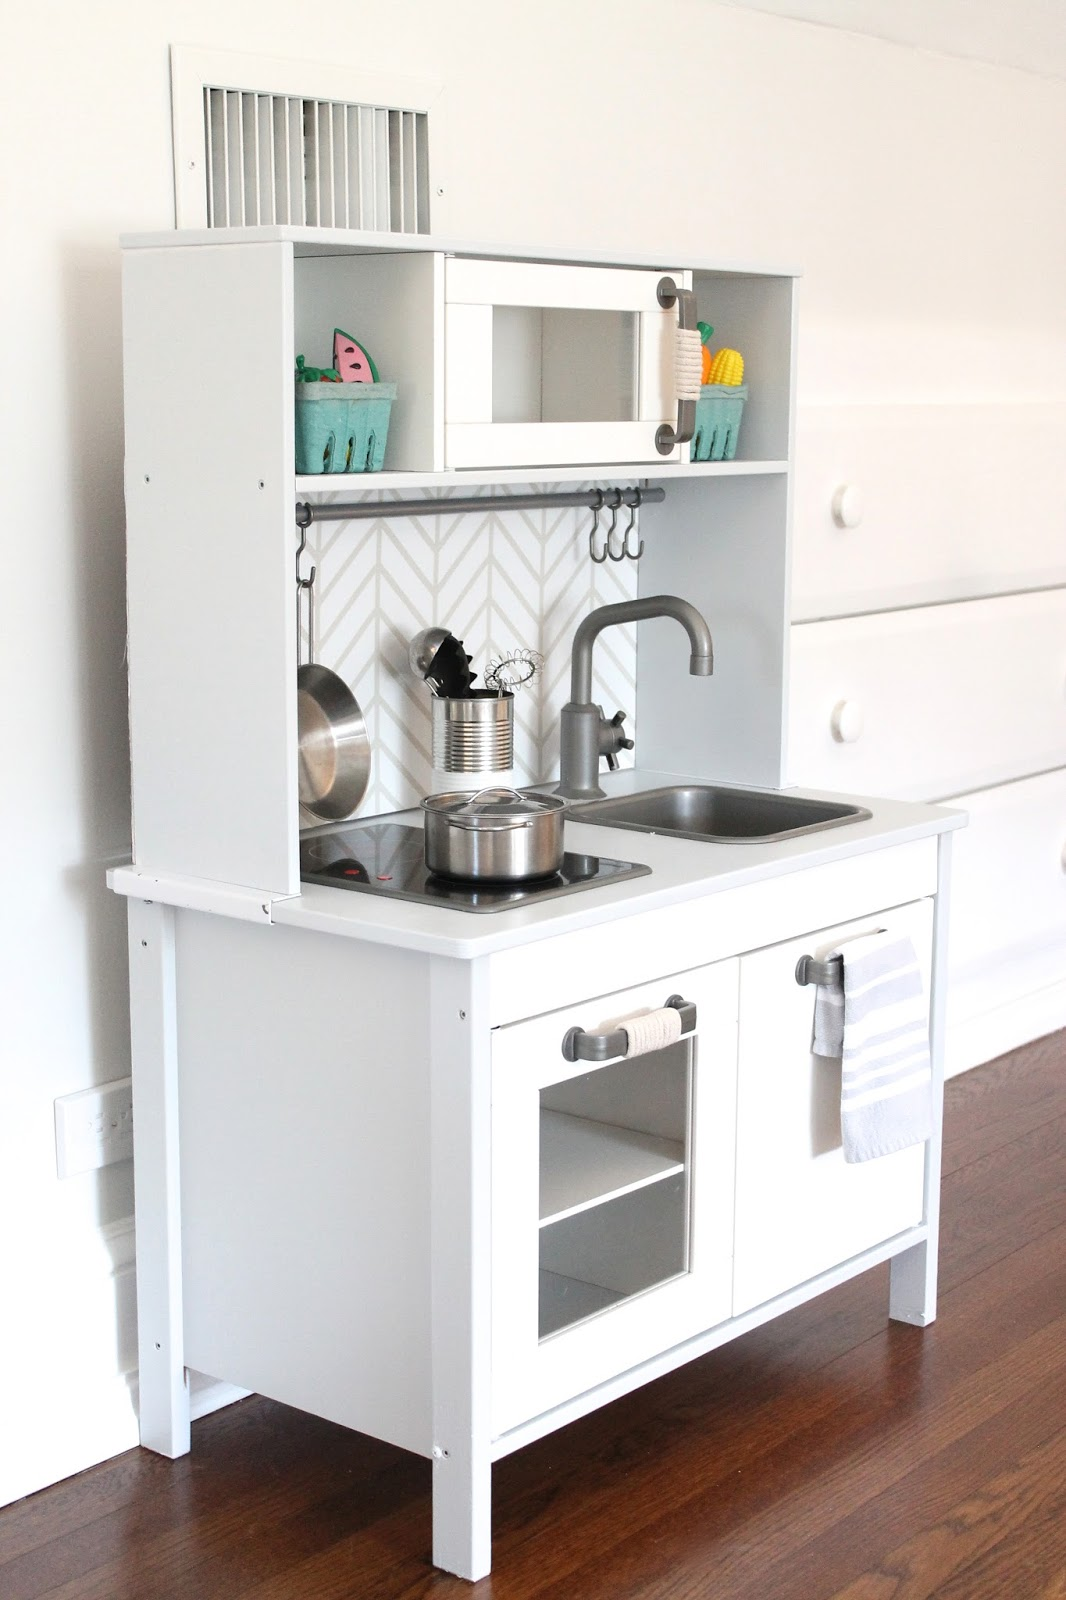 Wooden Play Kitchen Ikea the picket fence projects: kiddie kitchen renovation